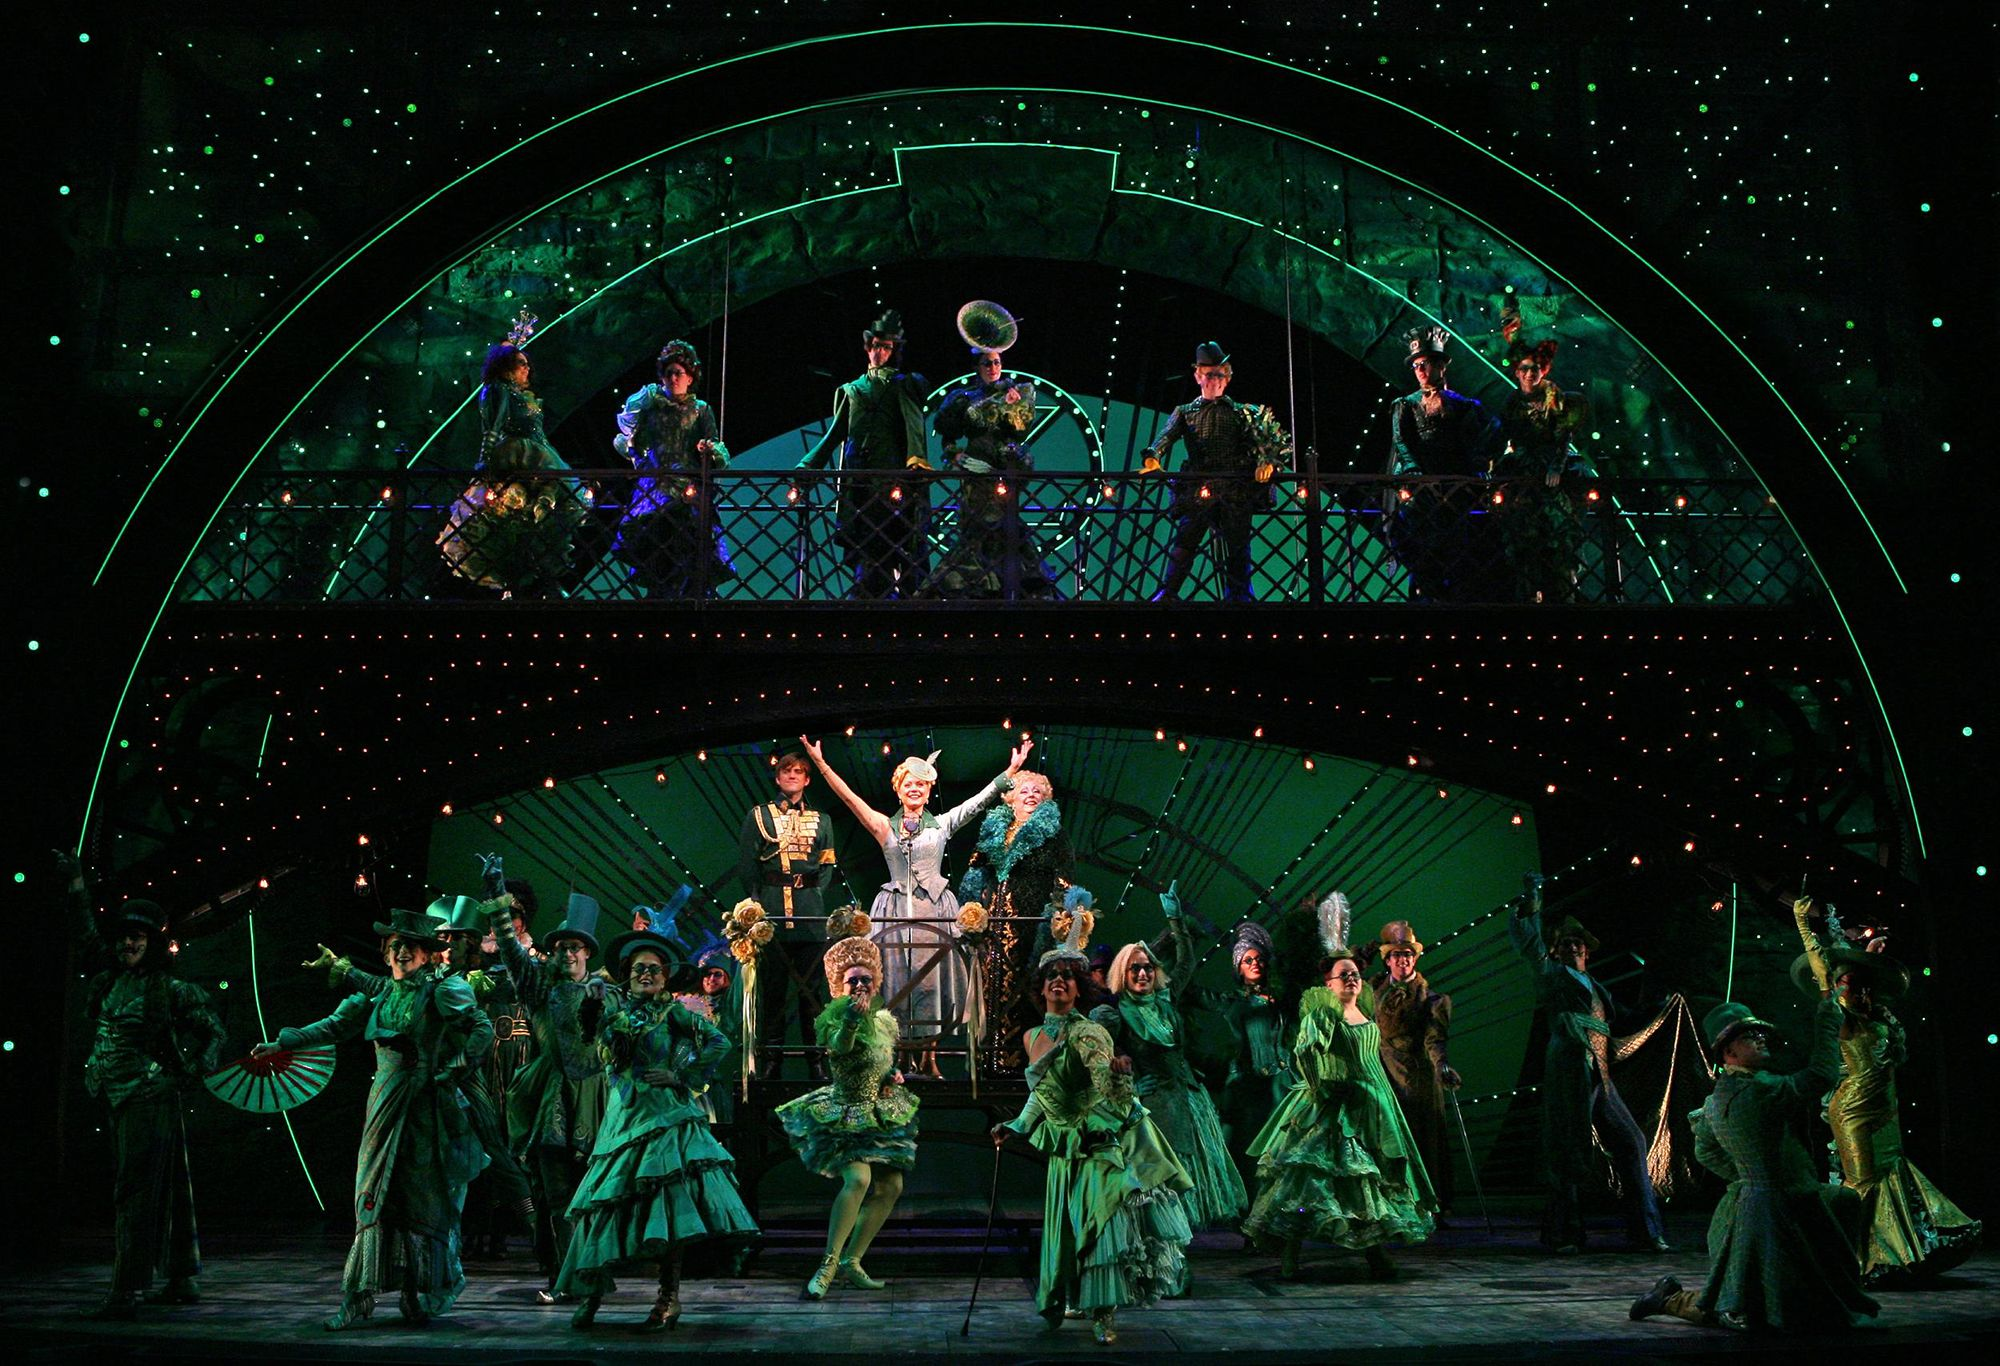 A performance of Wicked at the Dr. Phillips Center for the Performing Arts.